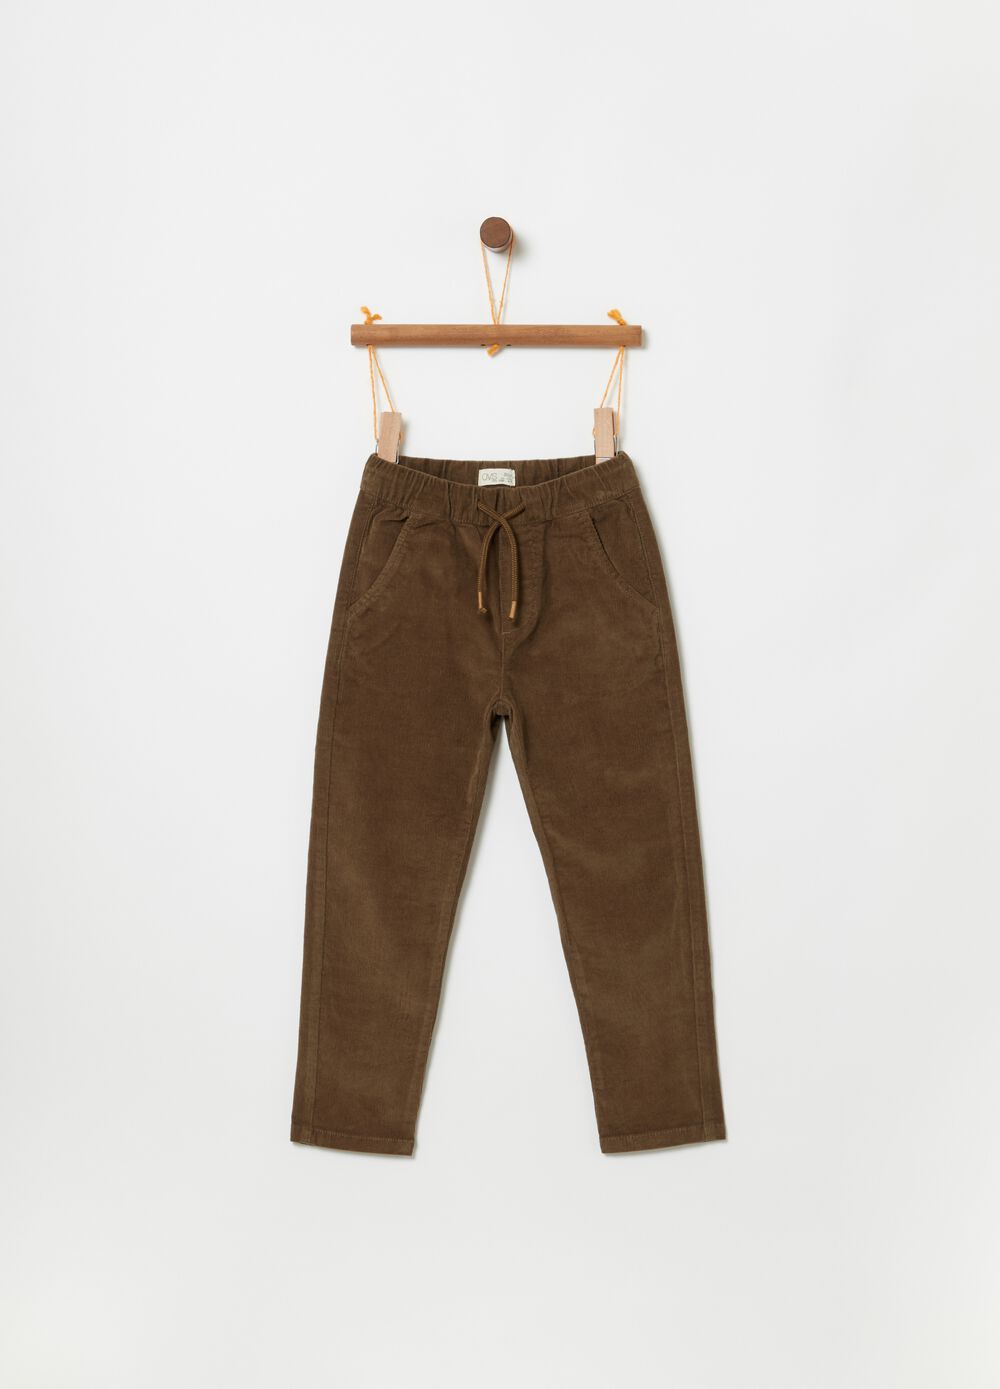 Stretch joggers with pockets and drawstring